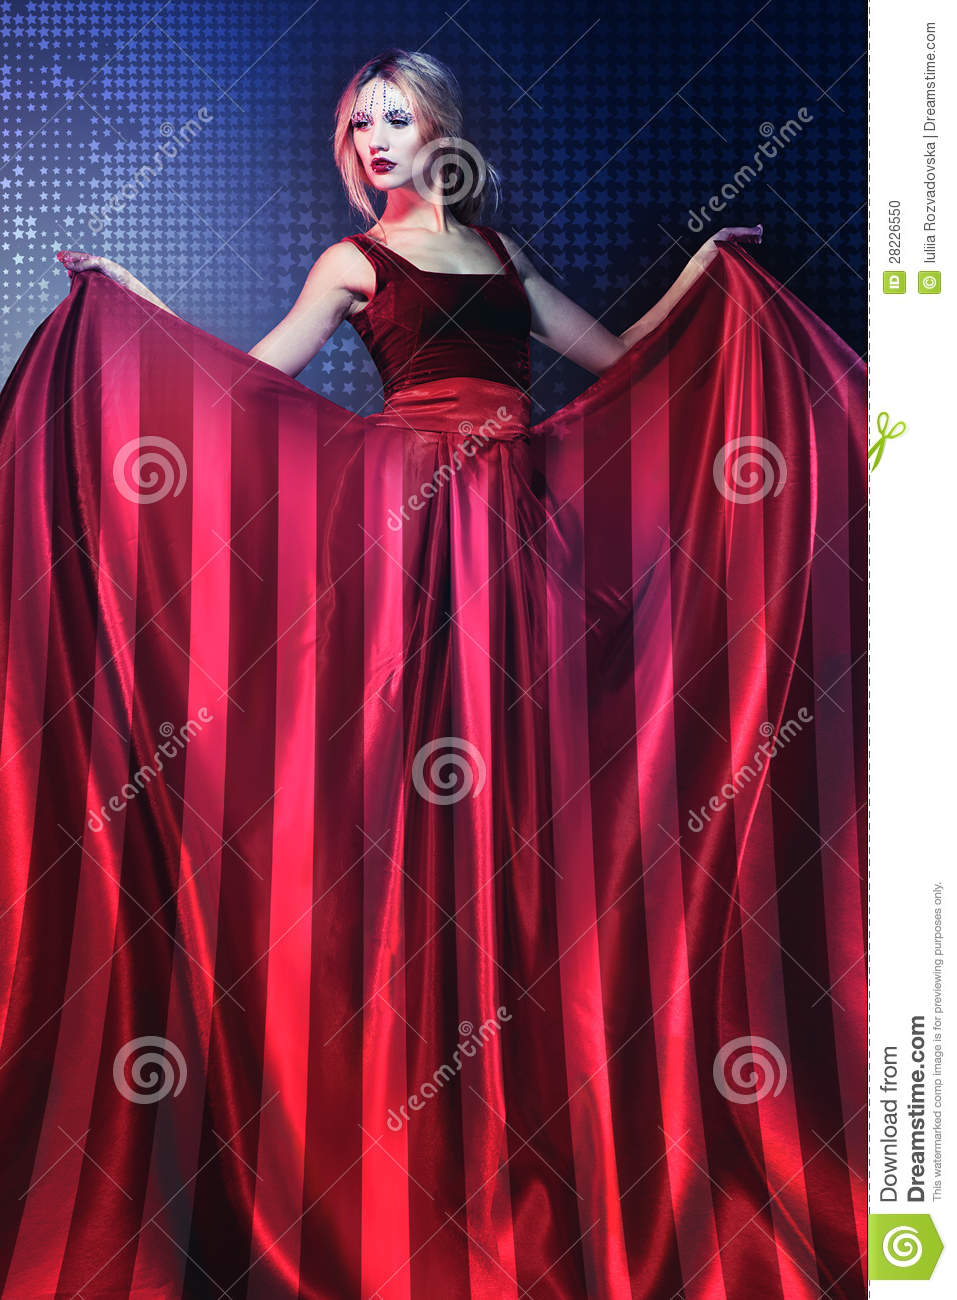 Woman In Elegant Red Dress With American Flag Stock Photo - Image of ...